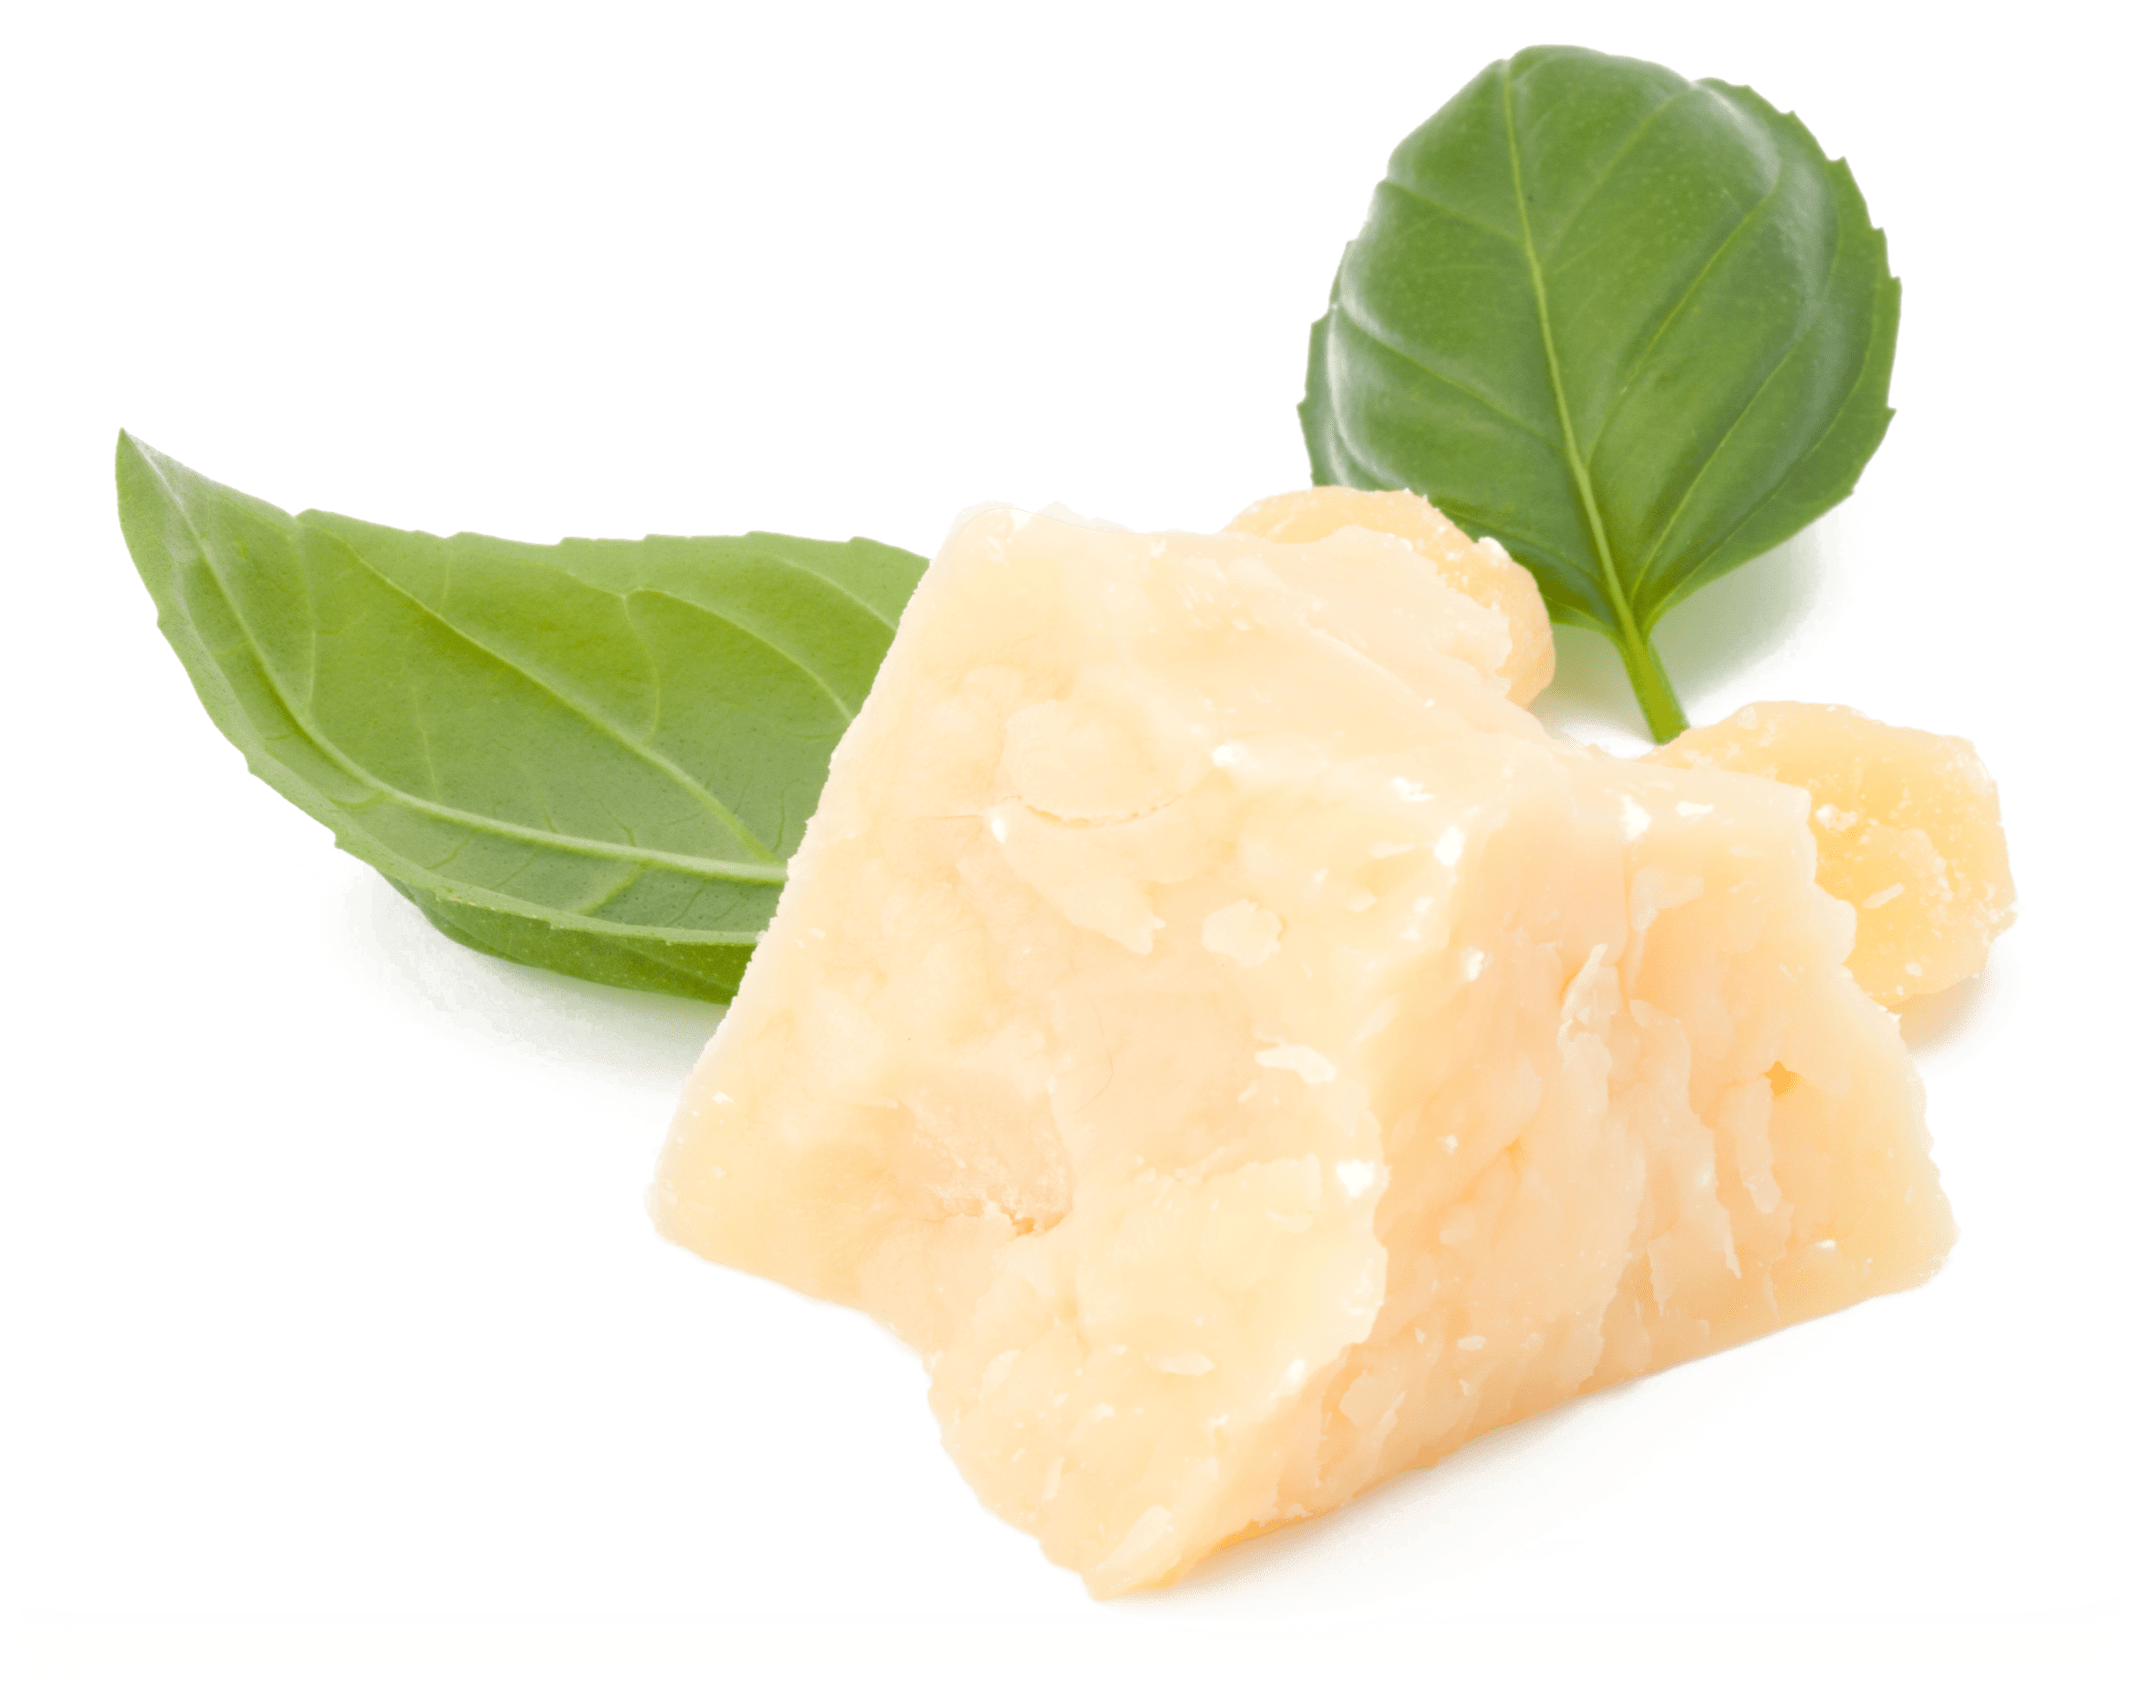 Block of parmesan cheese with basil leaves